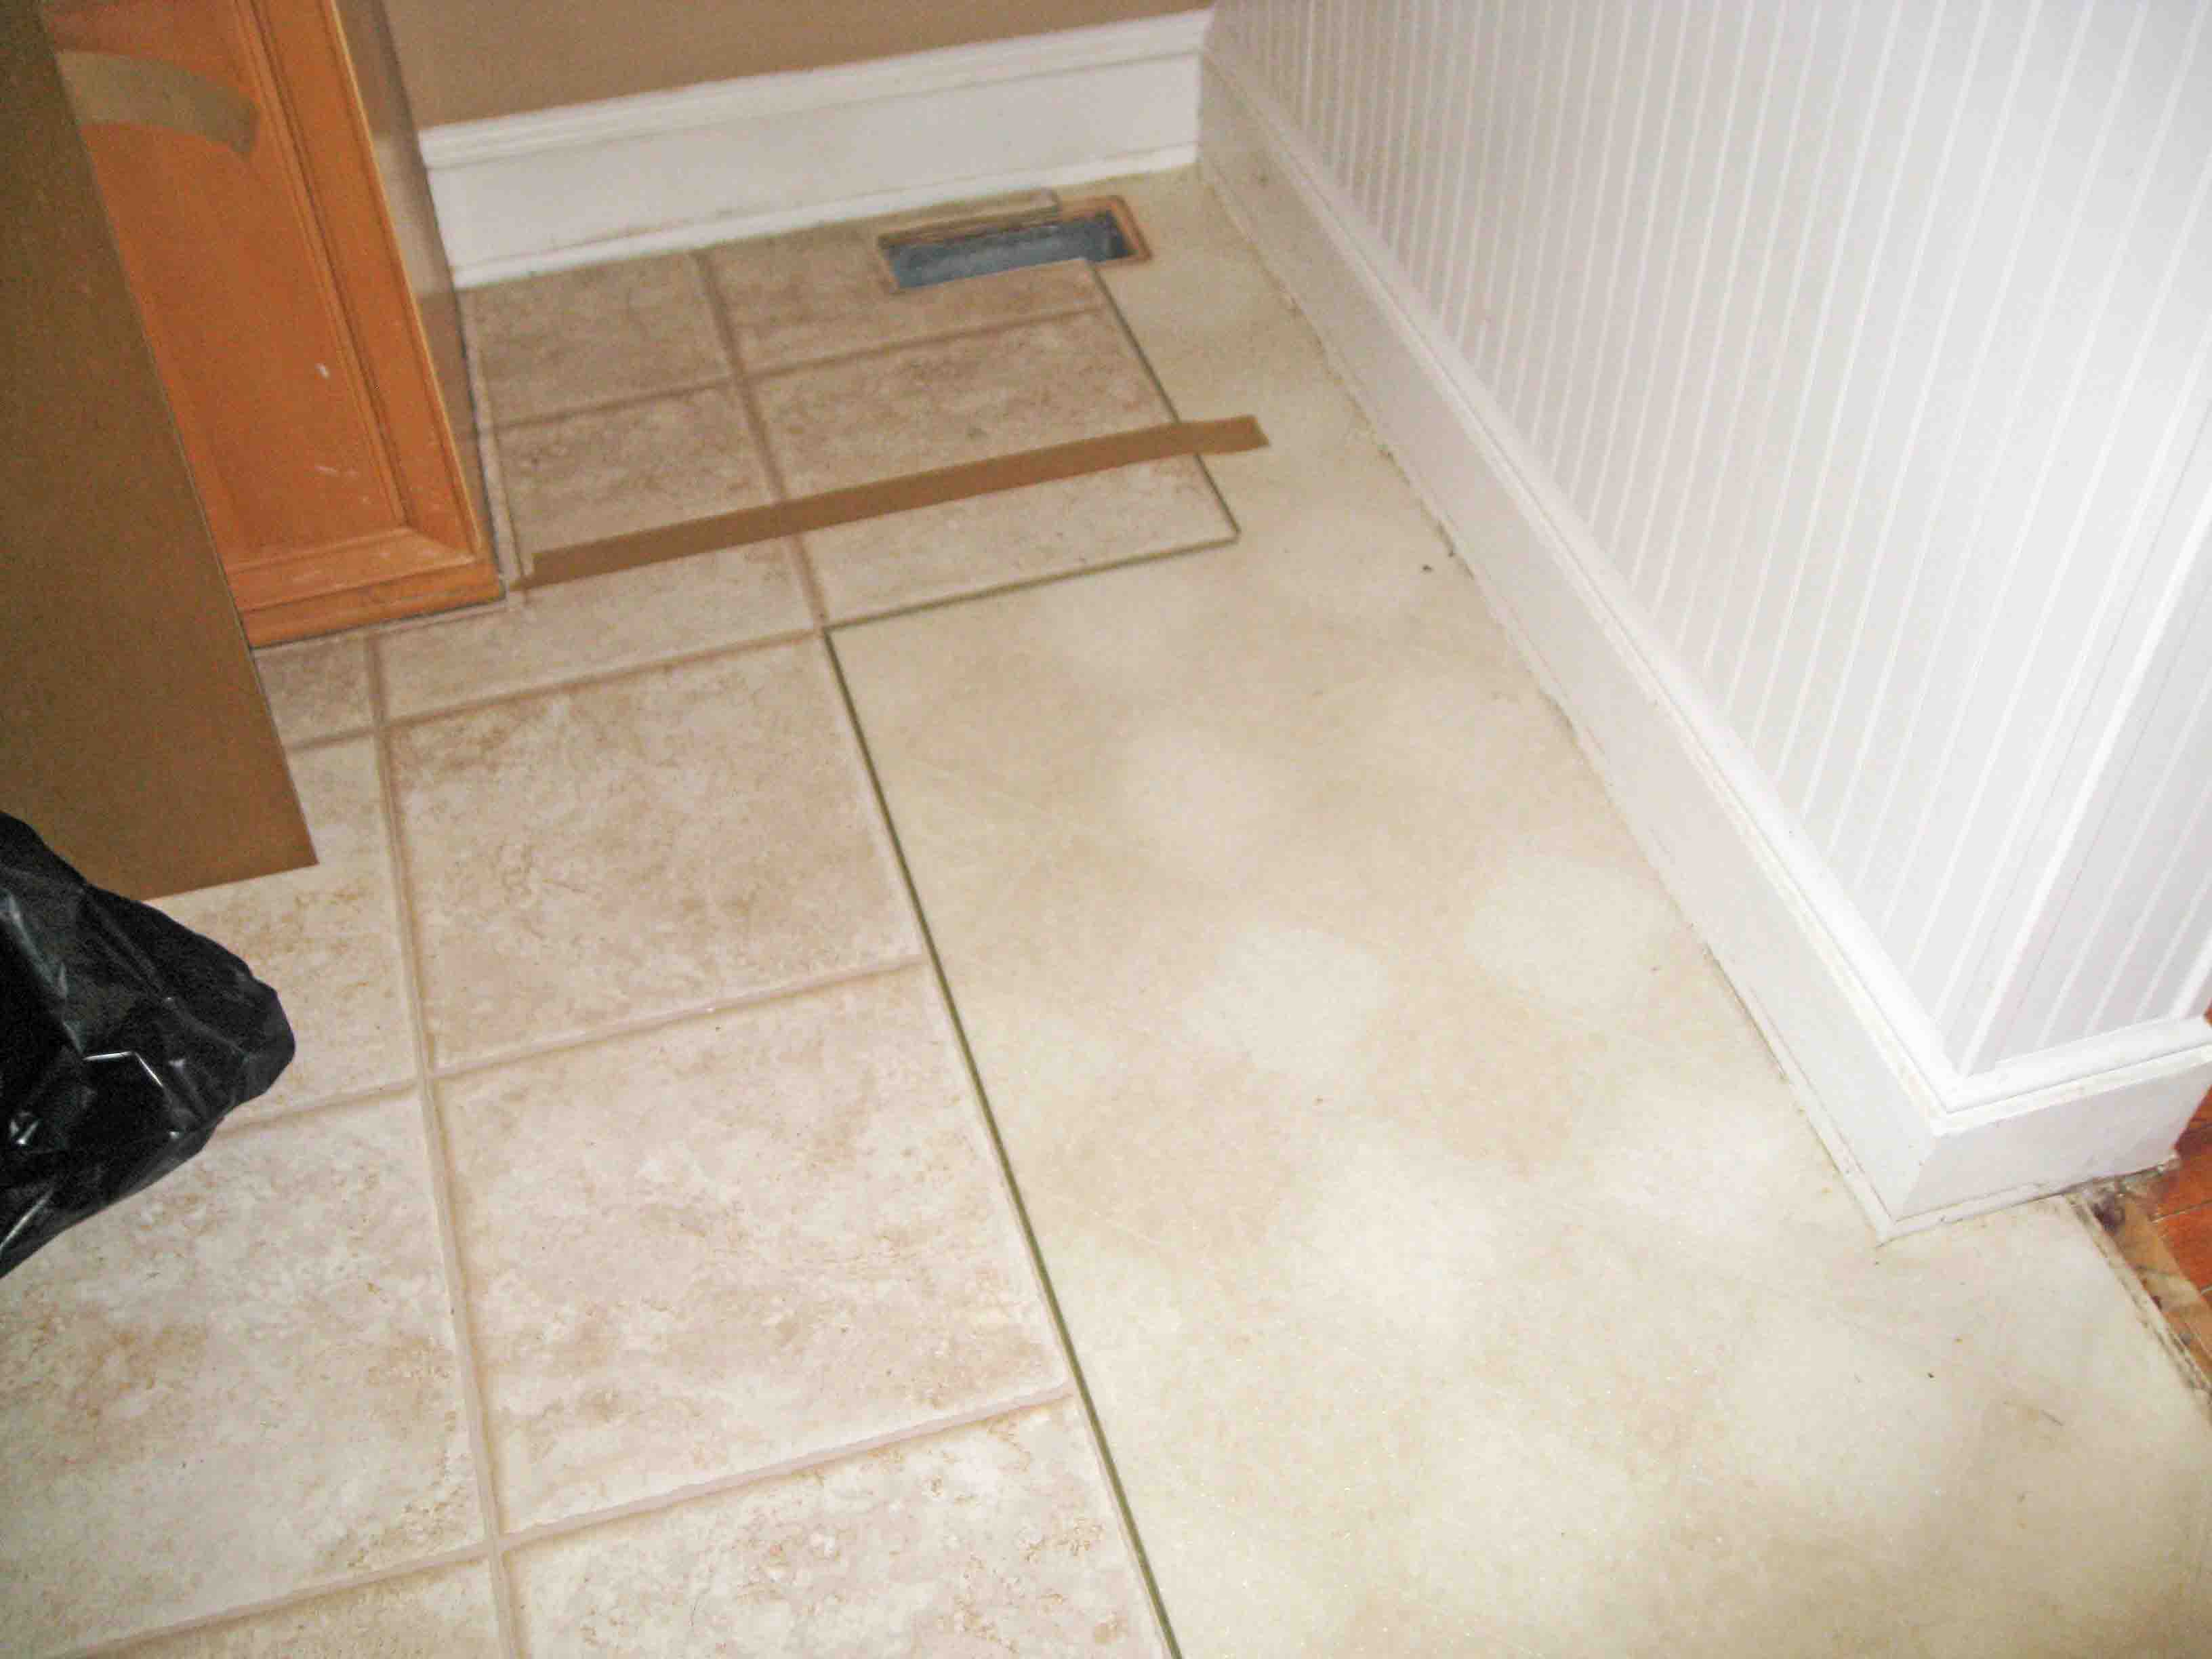 Layers of linoleum sunshineandsawdust for Linoleum flooring